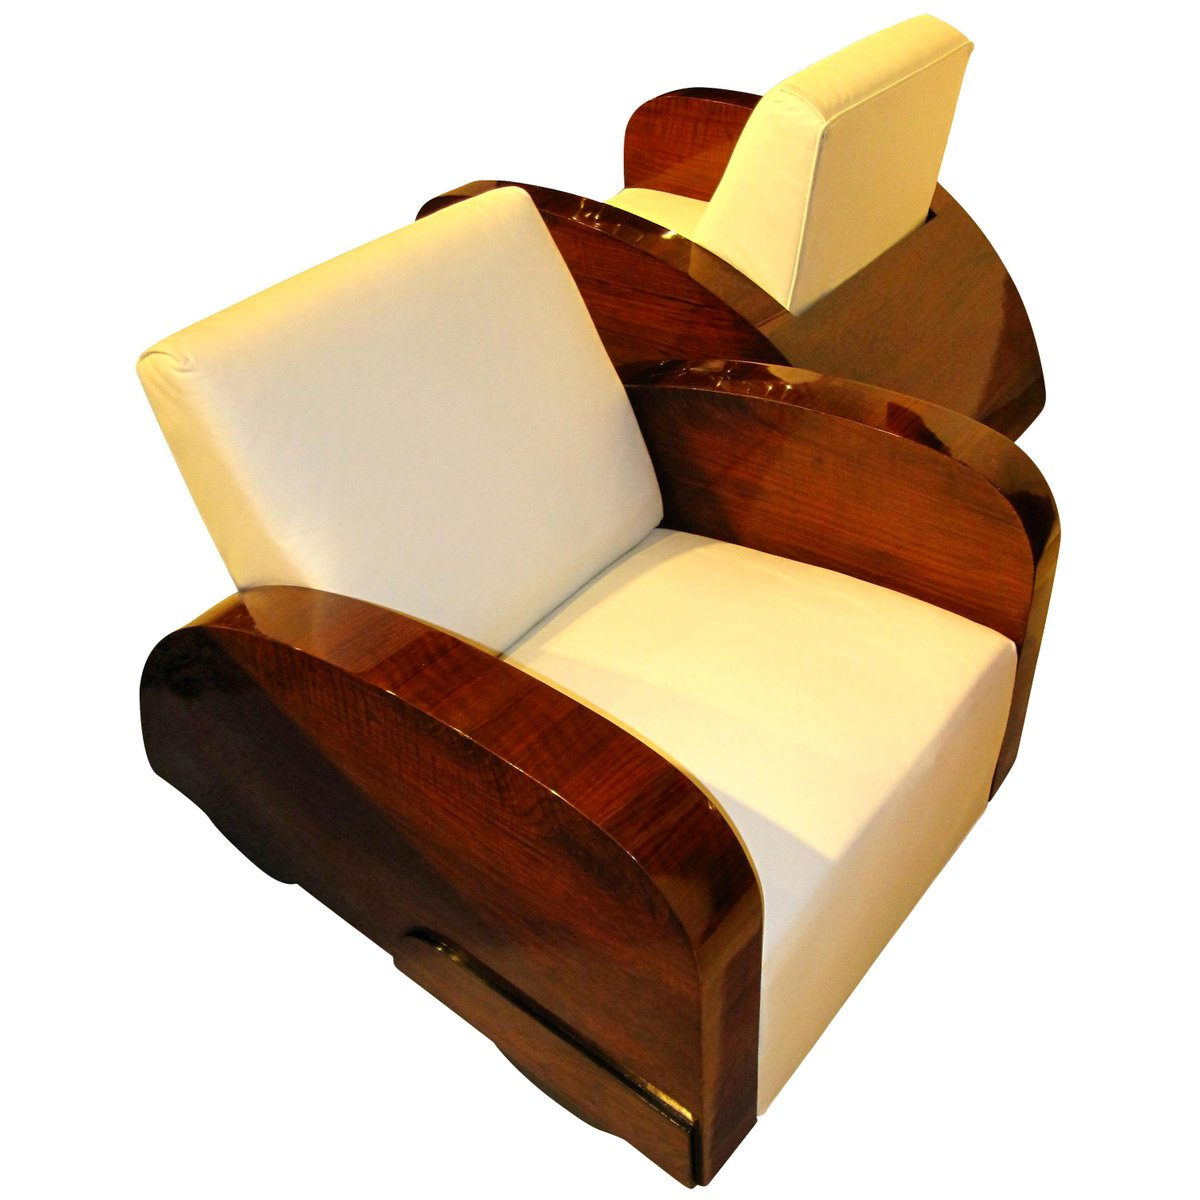 French Art Deco Club Chairs In Car Shape 1920s Set Of 2